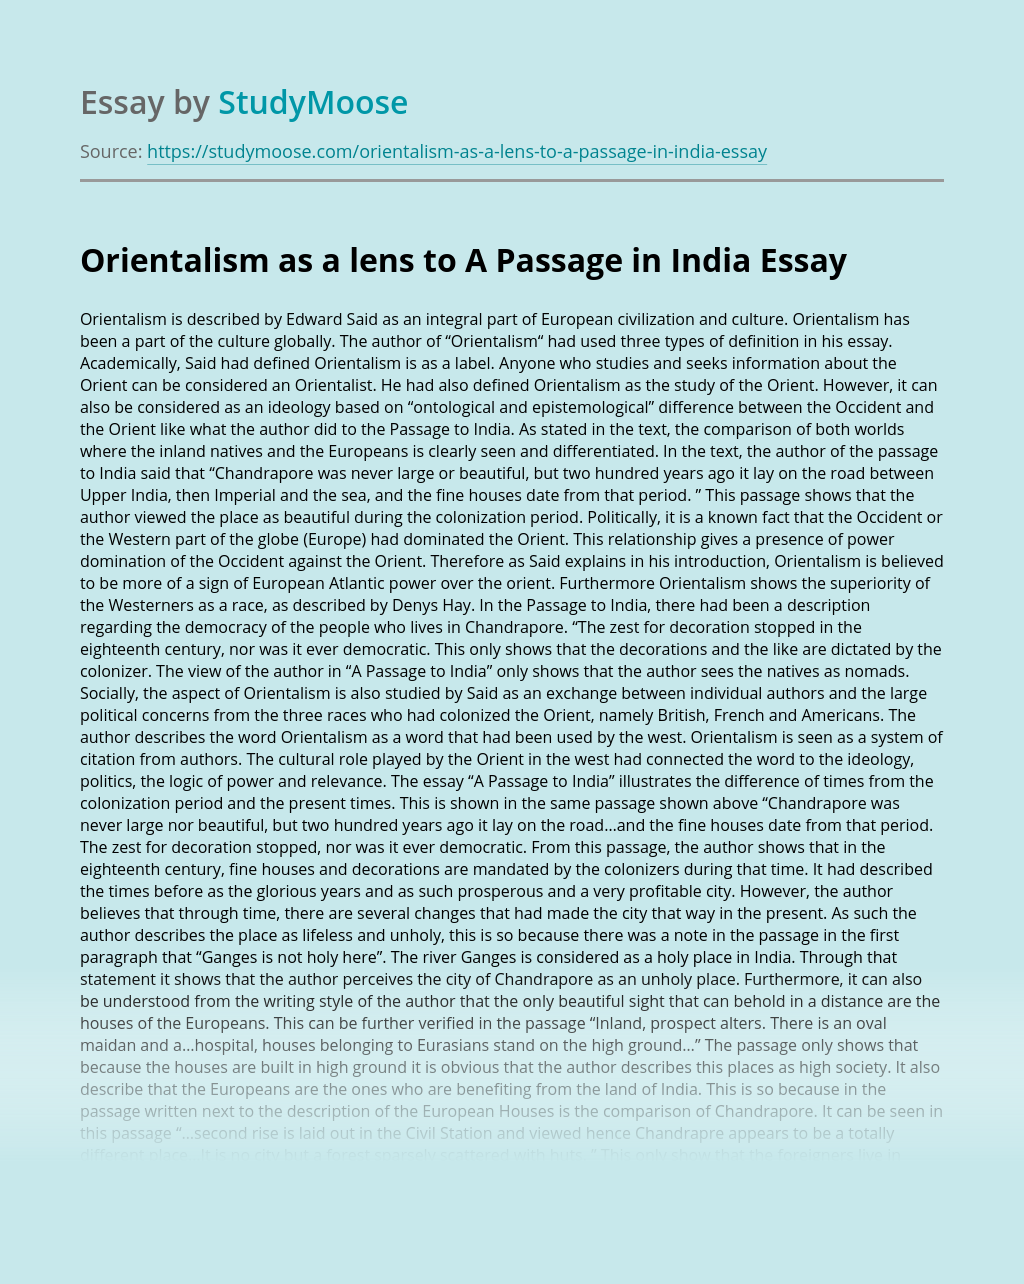 Orientalism as a lens to A Passage in India